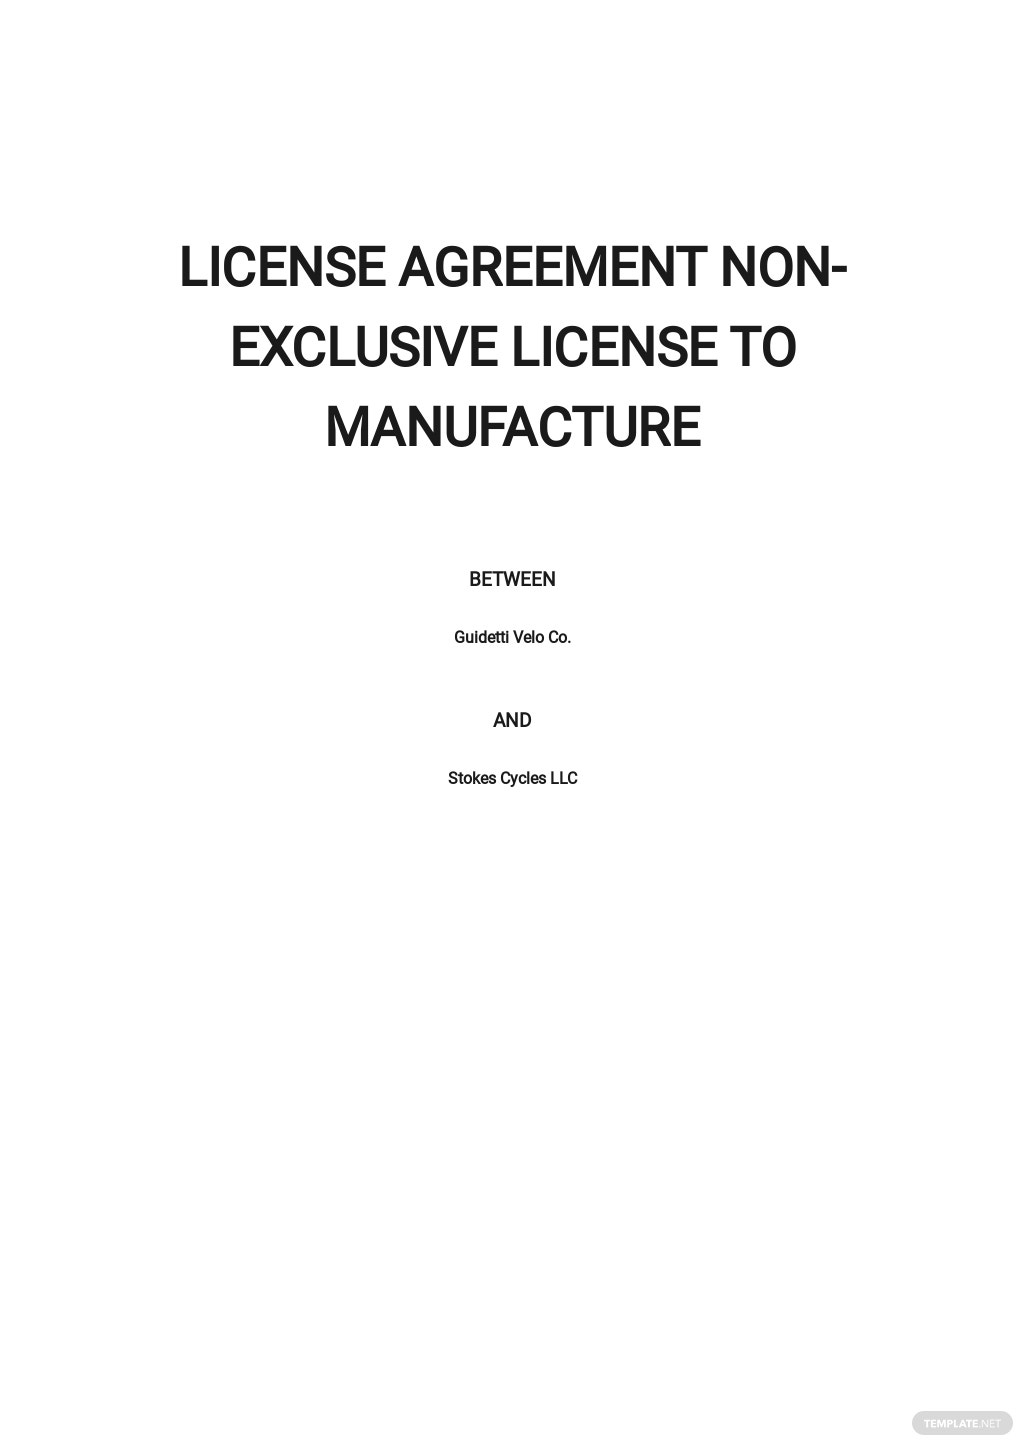 License Agreement Non Exclusive License To Manufacture Template.jpe